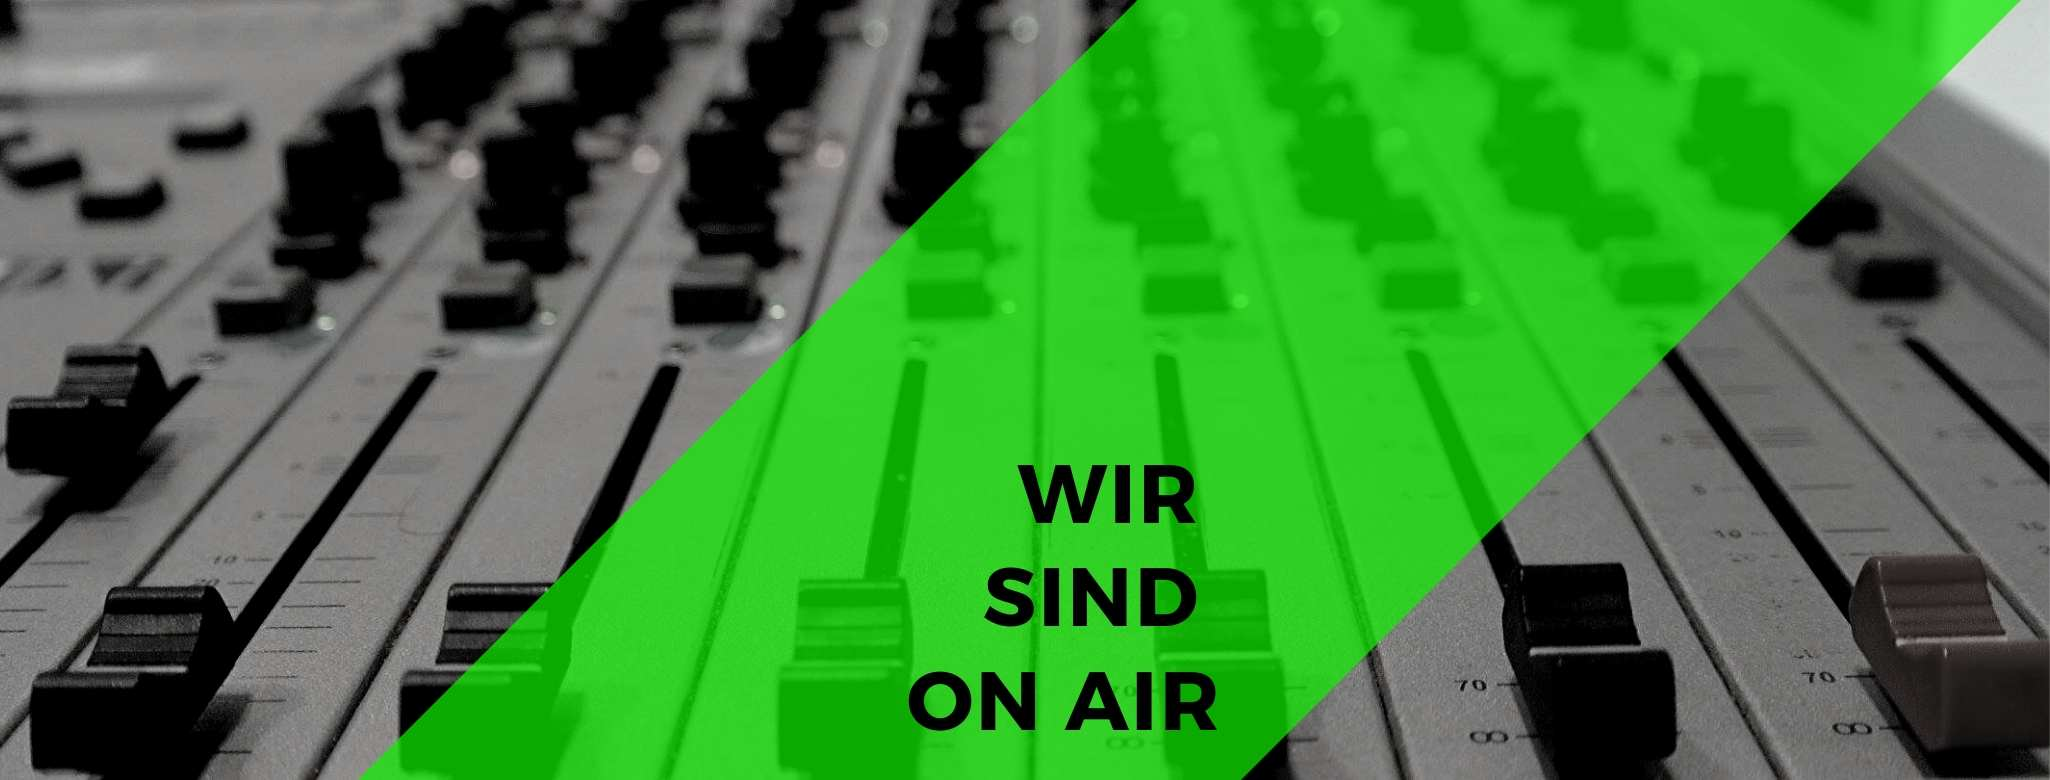 Wir sind on air